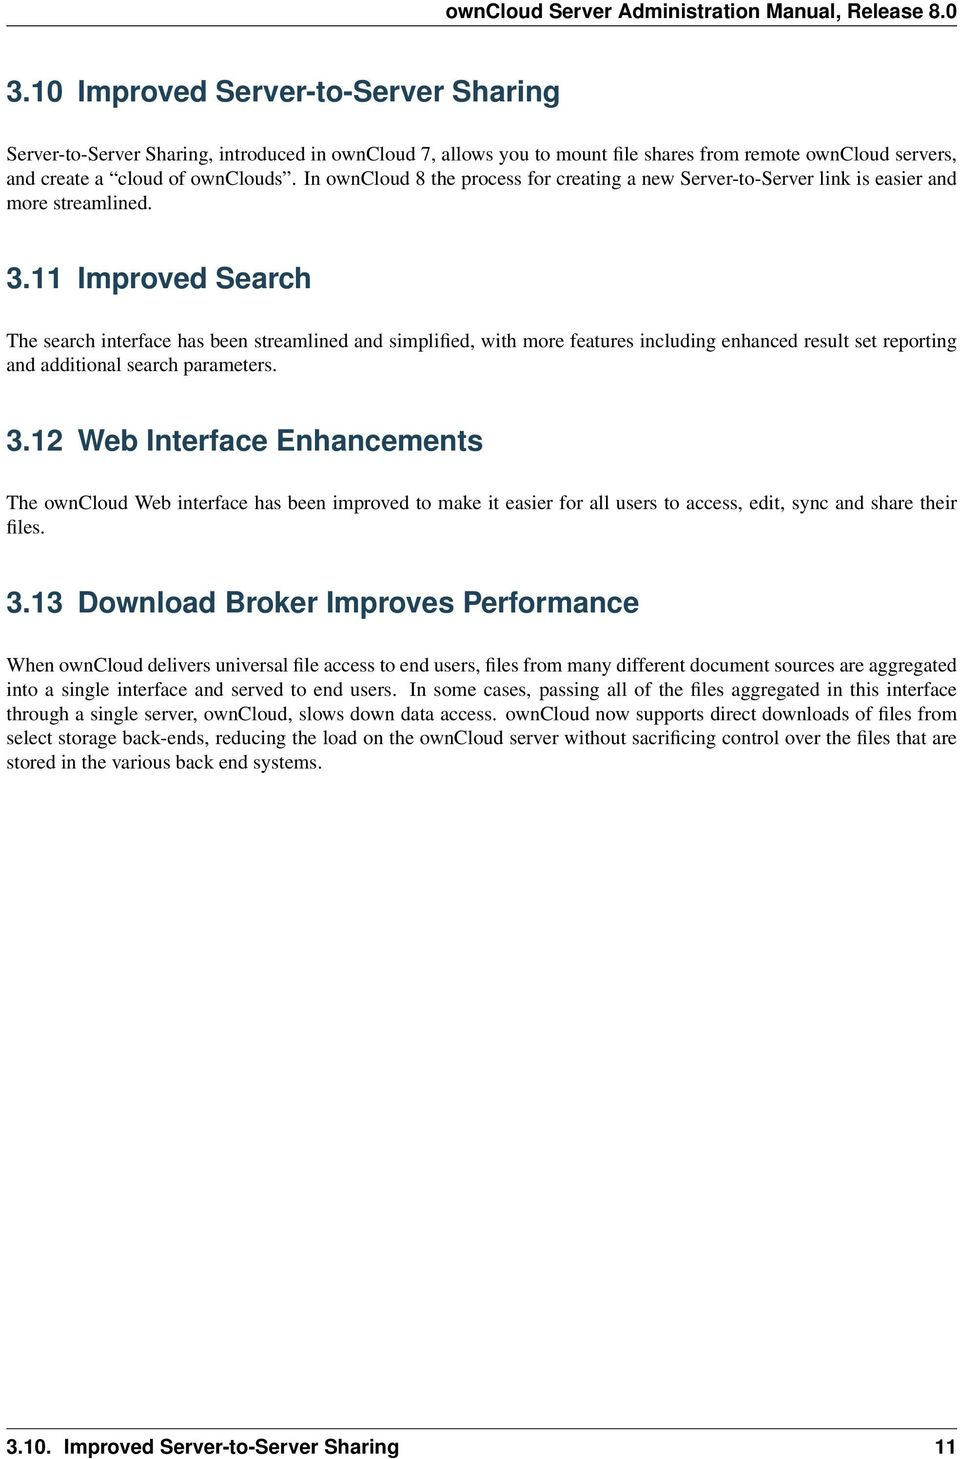 11 Improved Search The search interface has been streamlined and simplified, with more features including enhanced result set reporting and additional search parameters. 3.